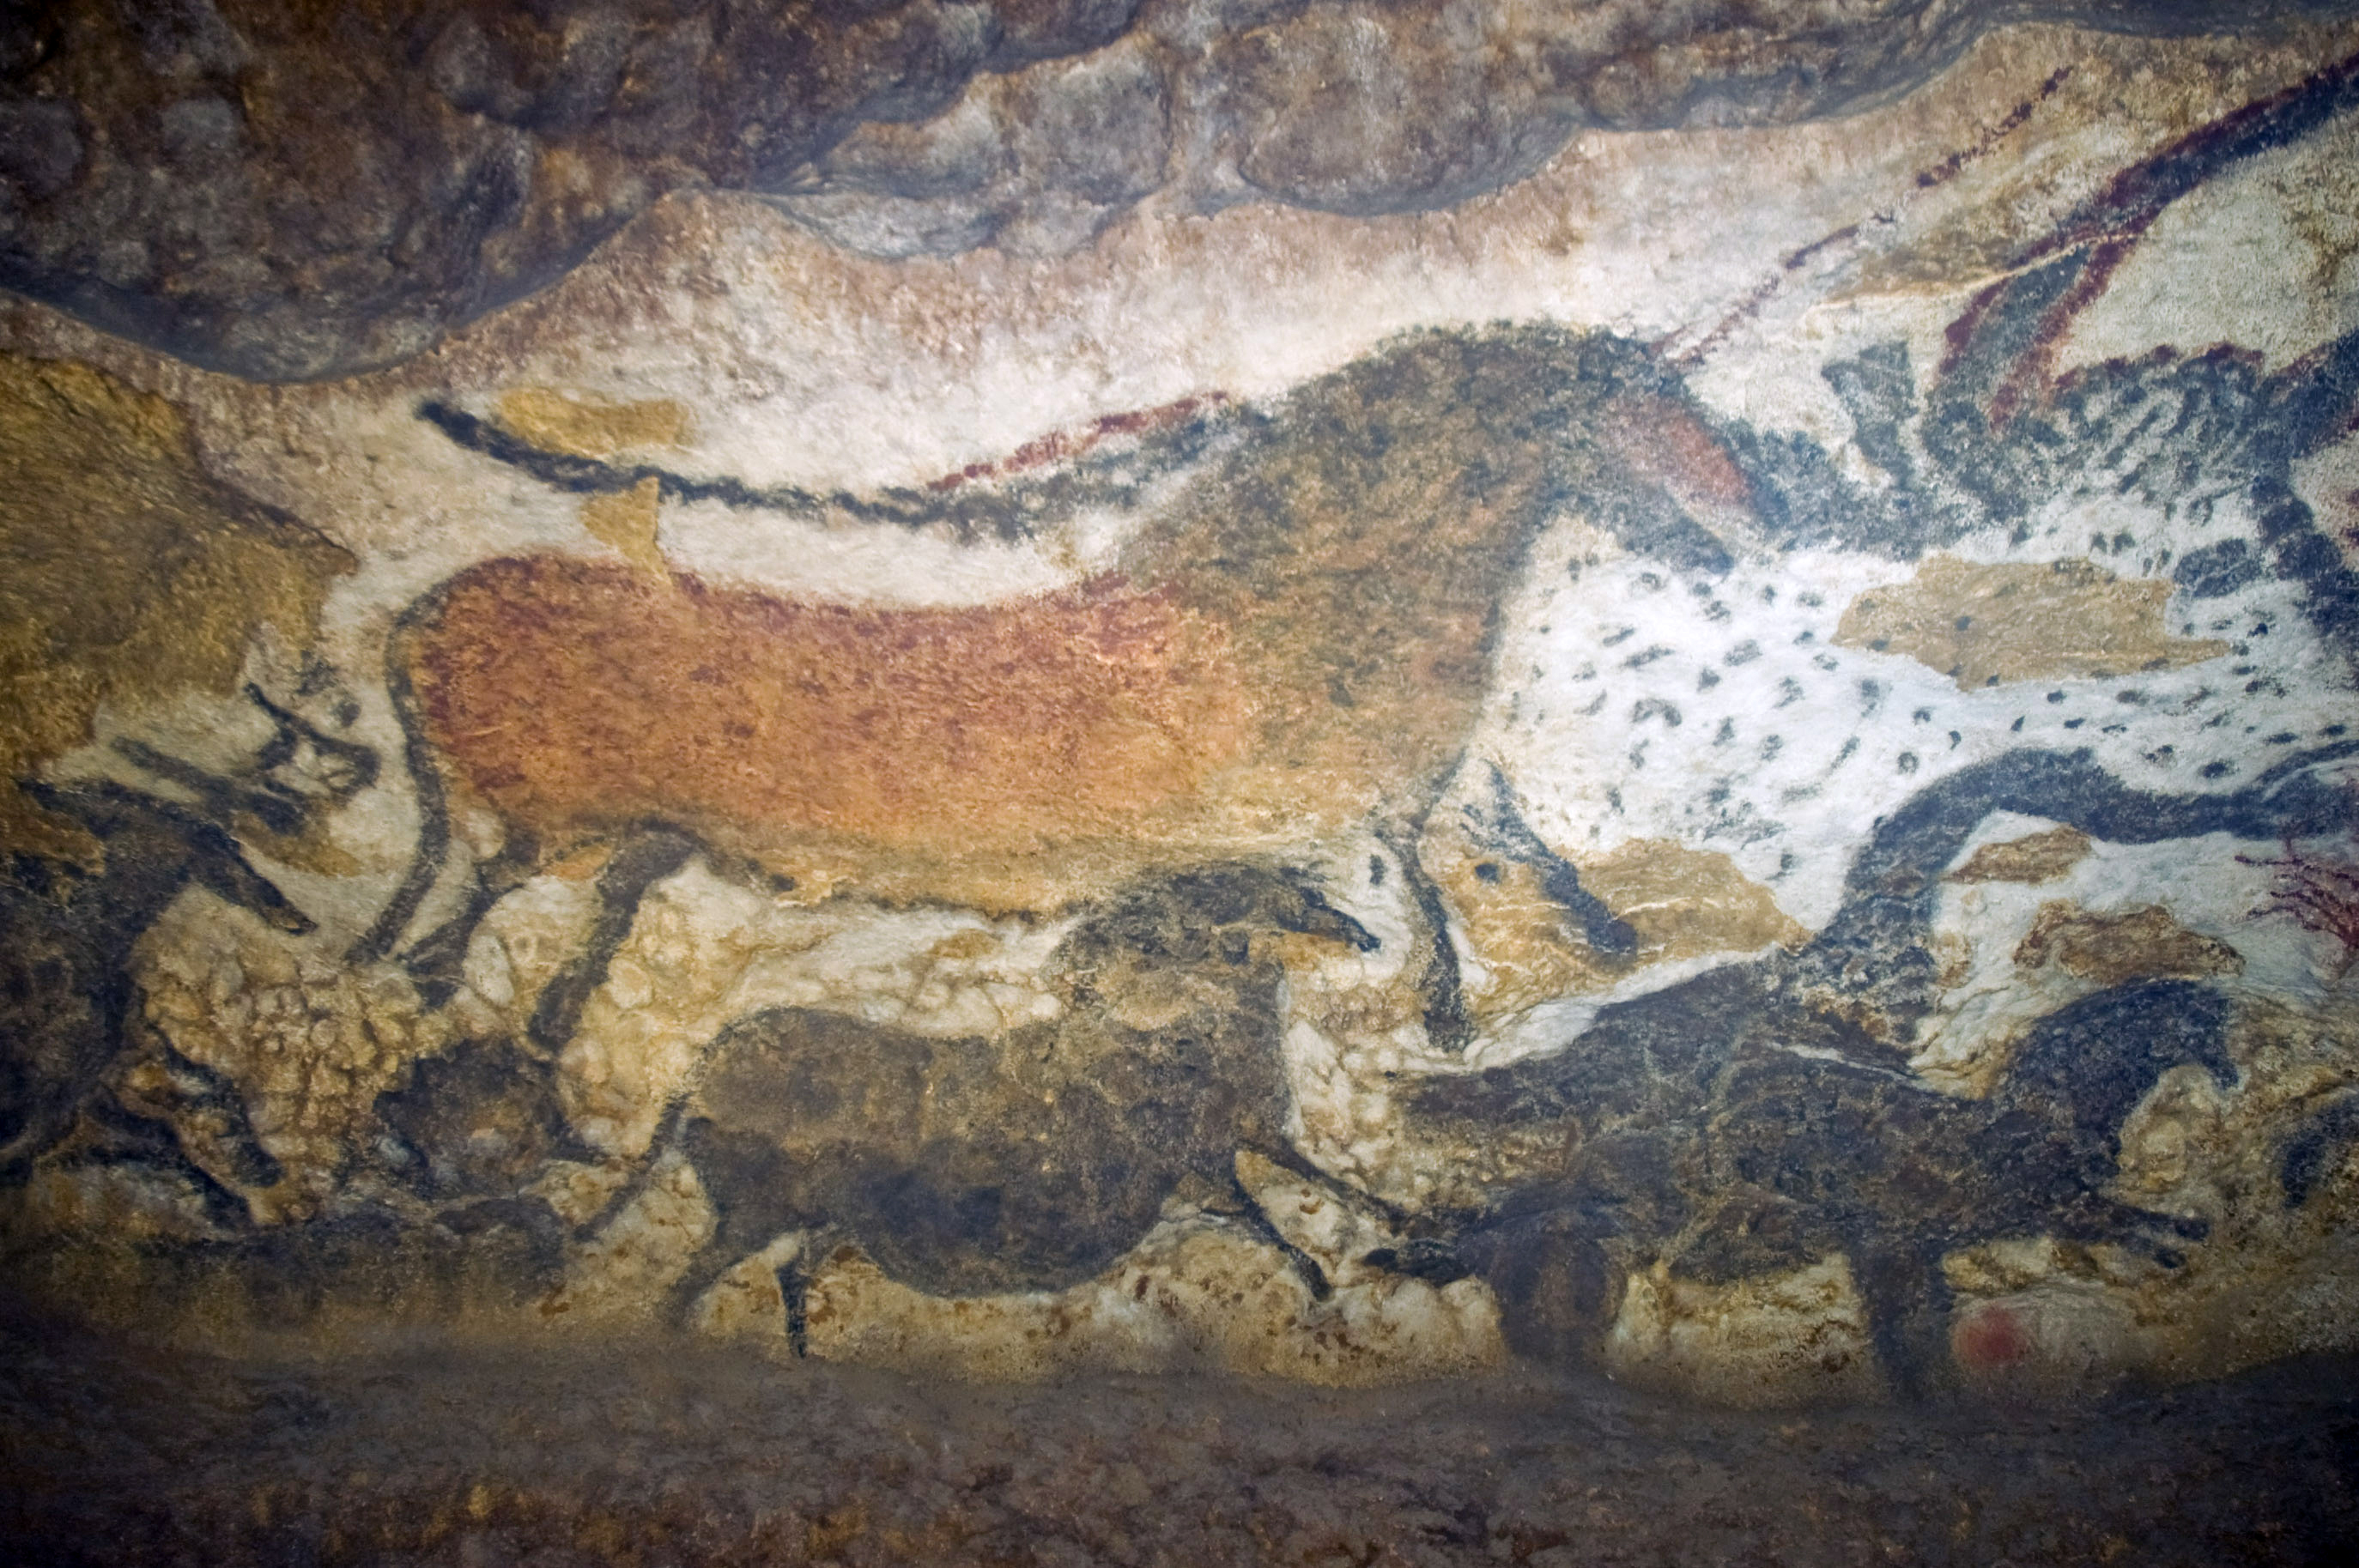 http://upload.wikimedia.org/wikipedia/commons/4/40/Lascaux_II.jpg